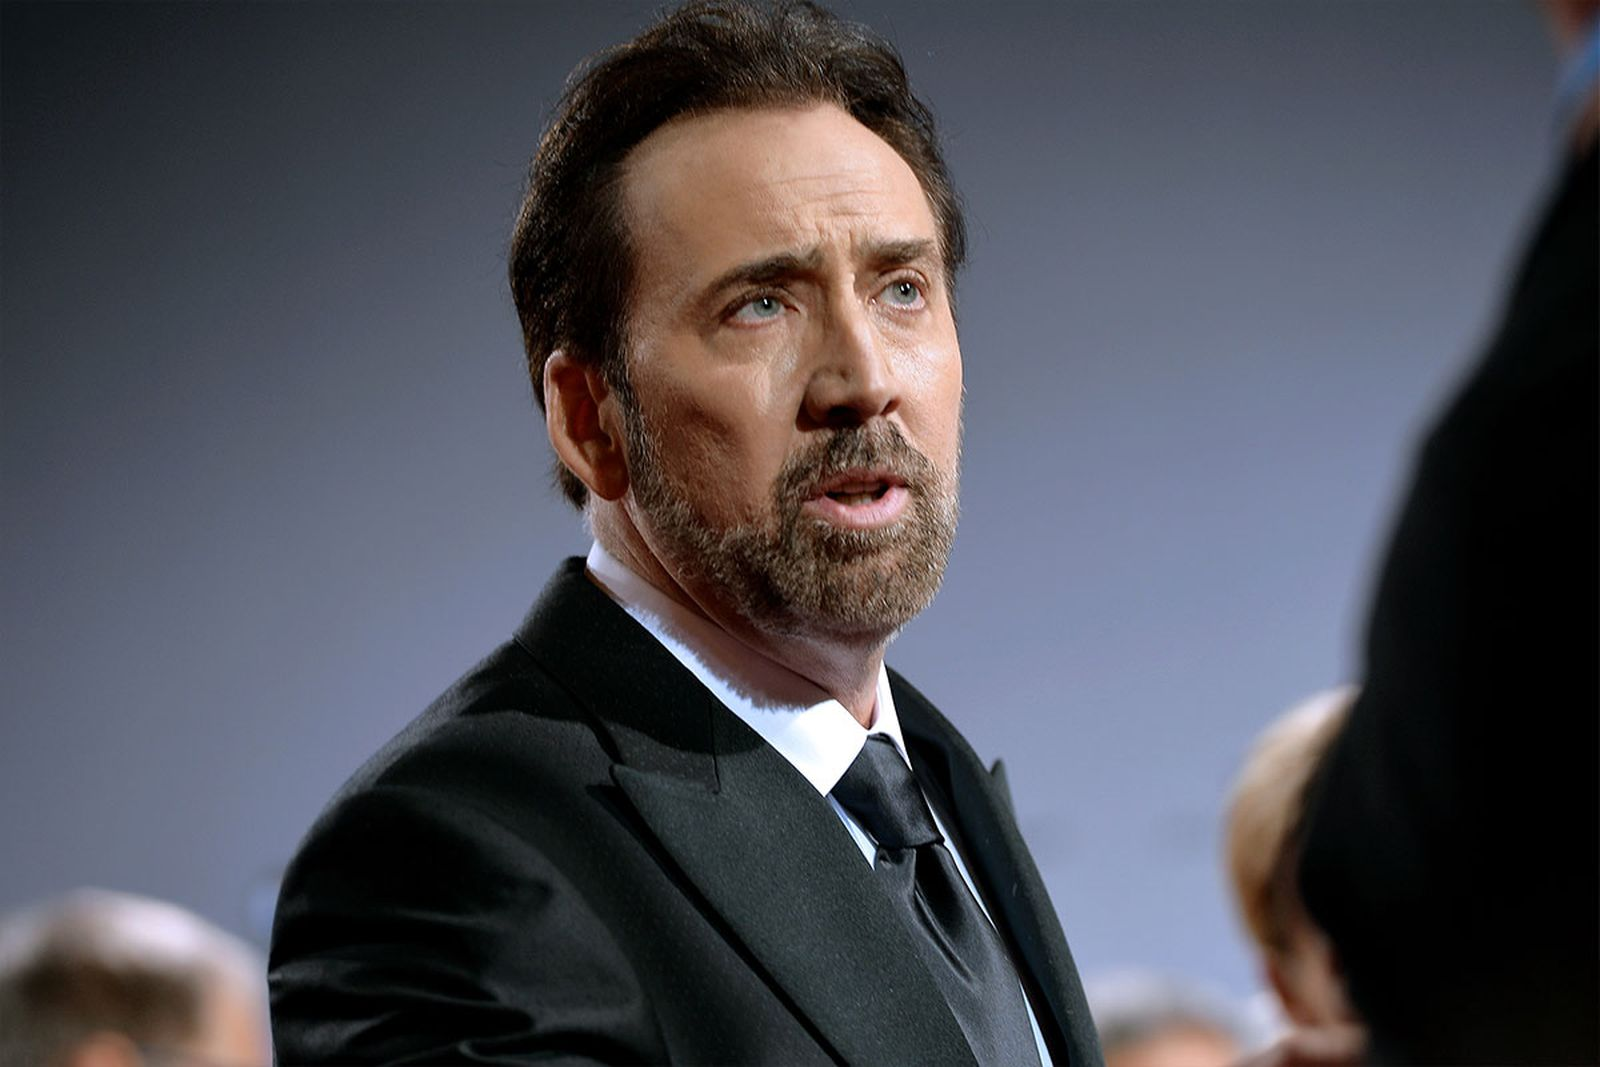 nicolas-cage-cast-the-unbearable-weight-of-massive-talent-01